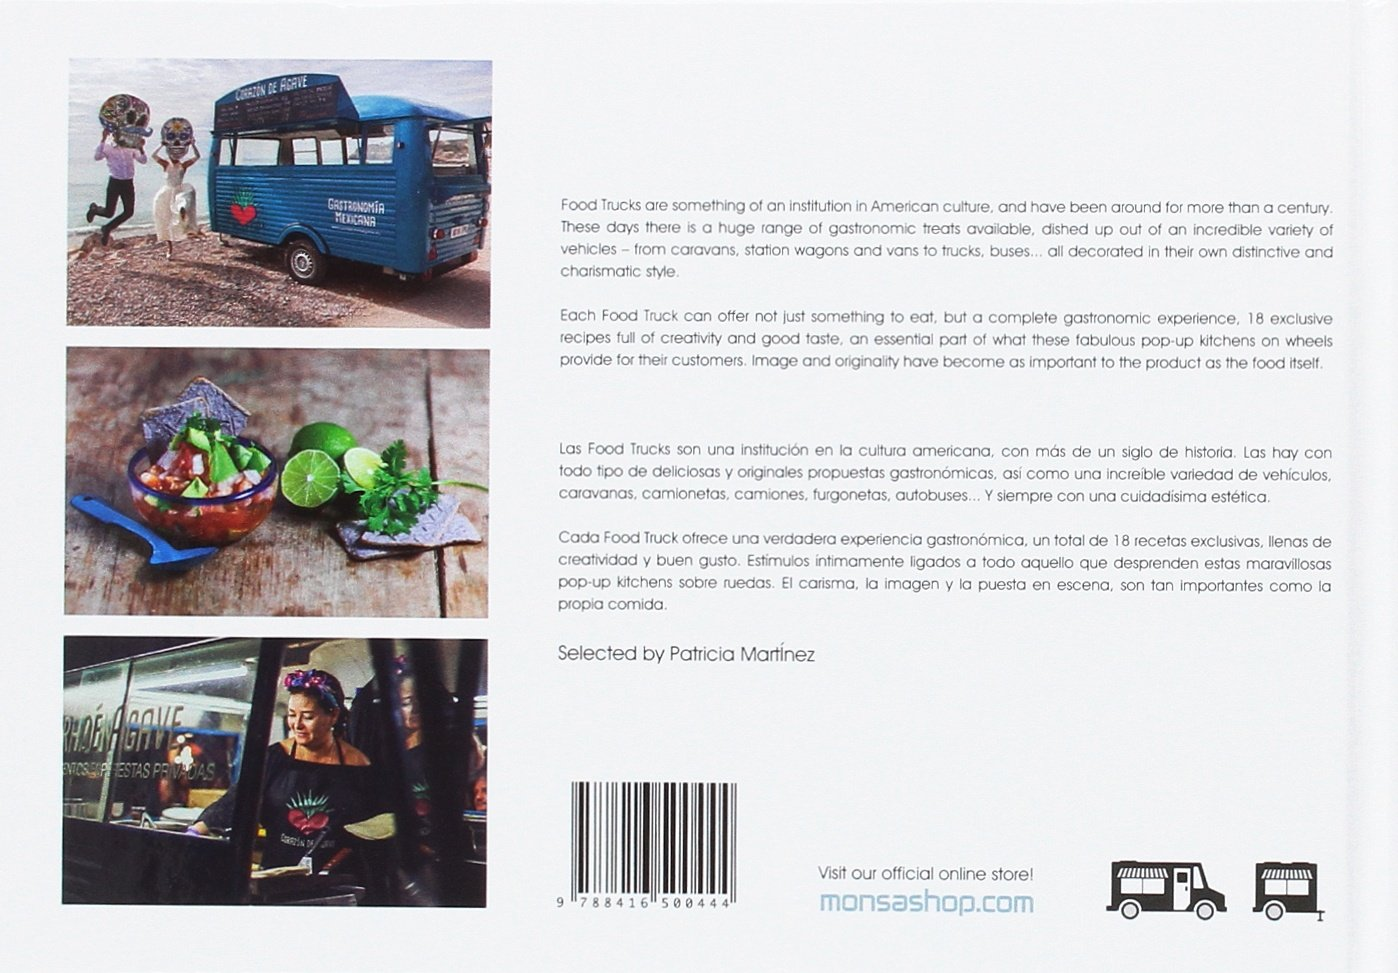 Food Trucks Delights on Wheels (English and Spanish Edition): Martinez. Patricia: 9788416500444: Amazon.com: Books